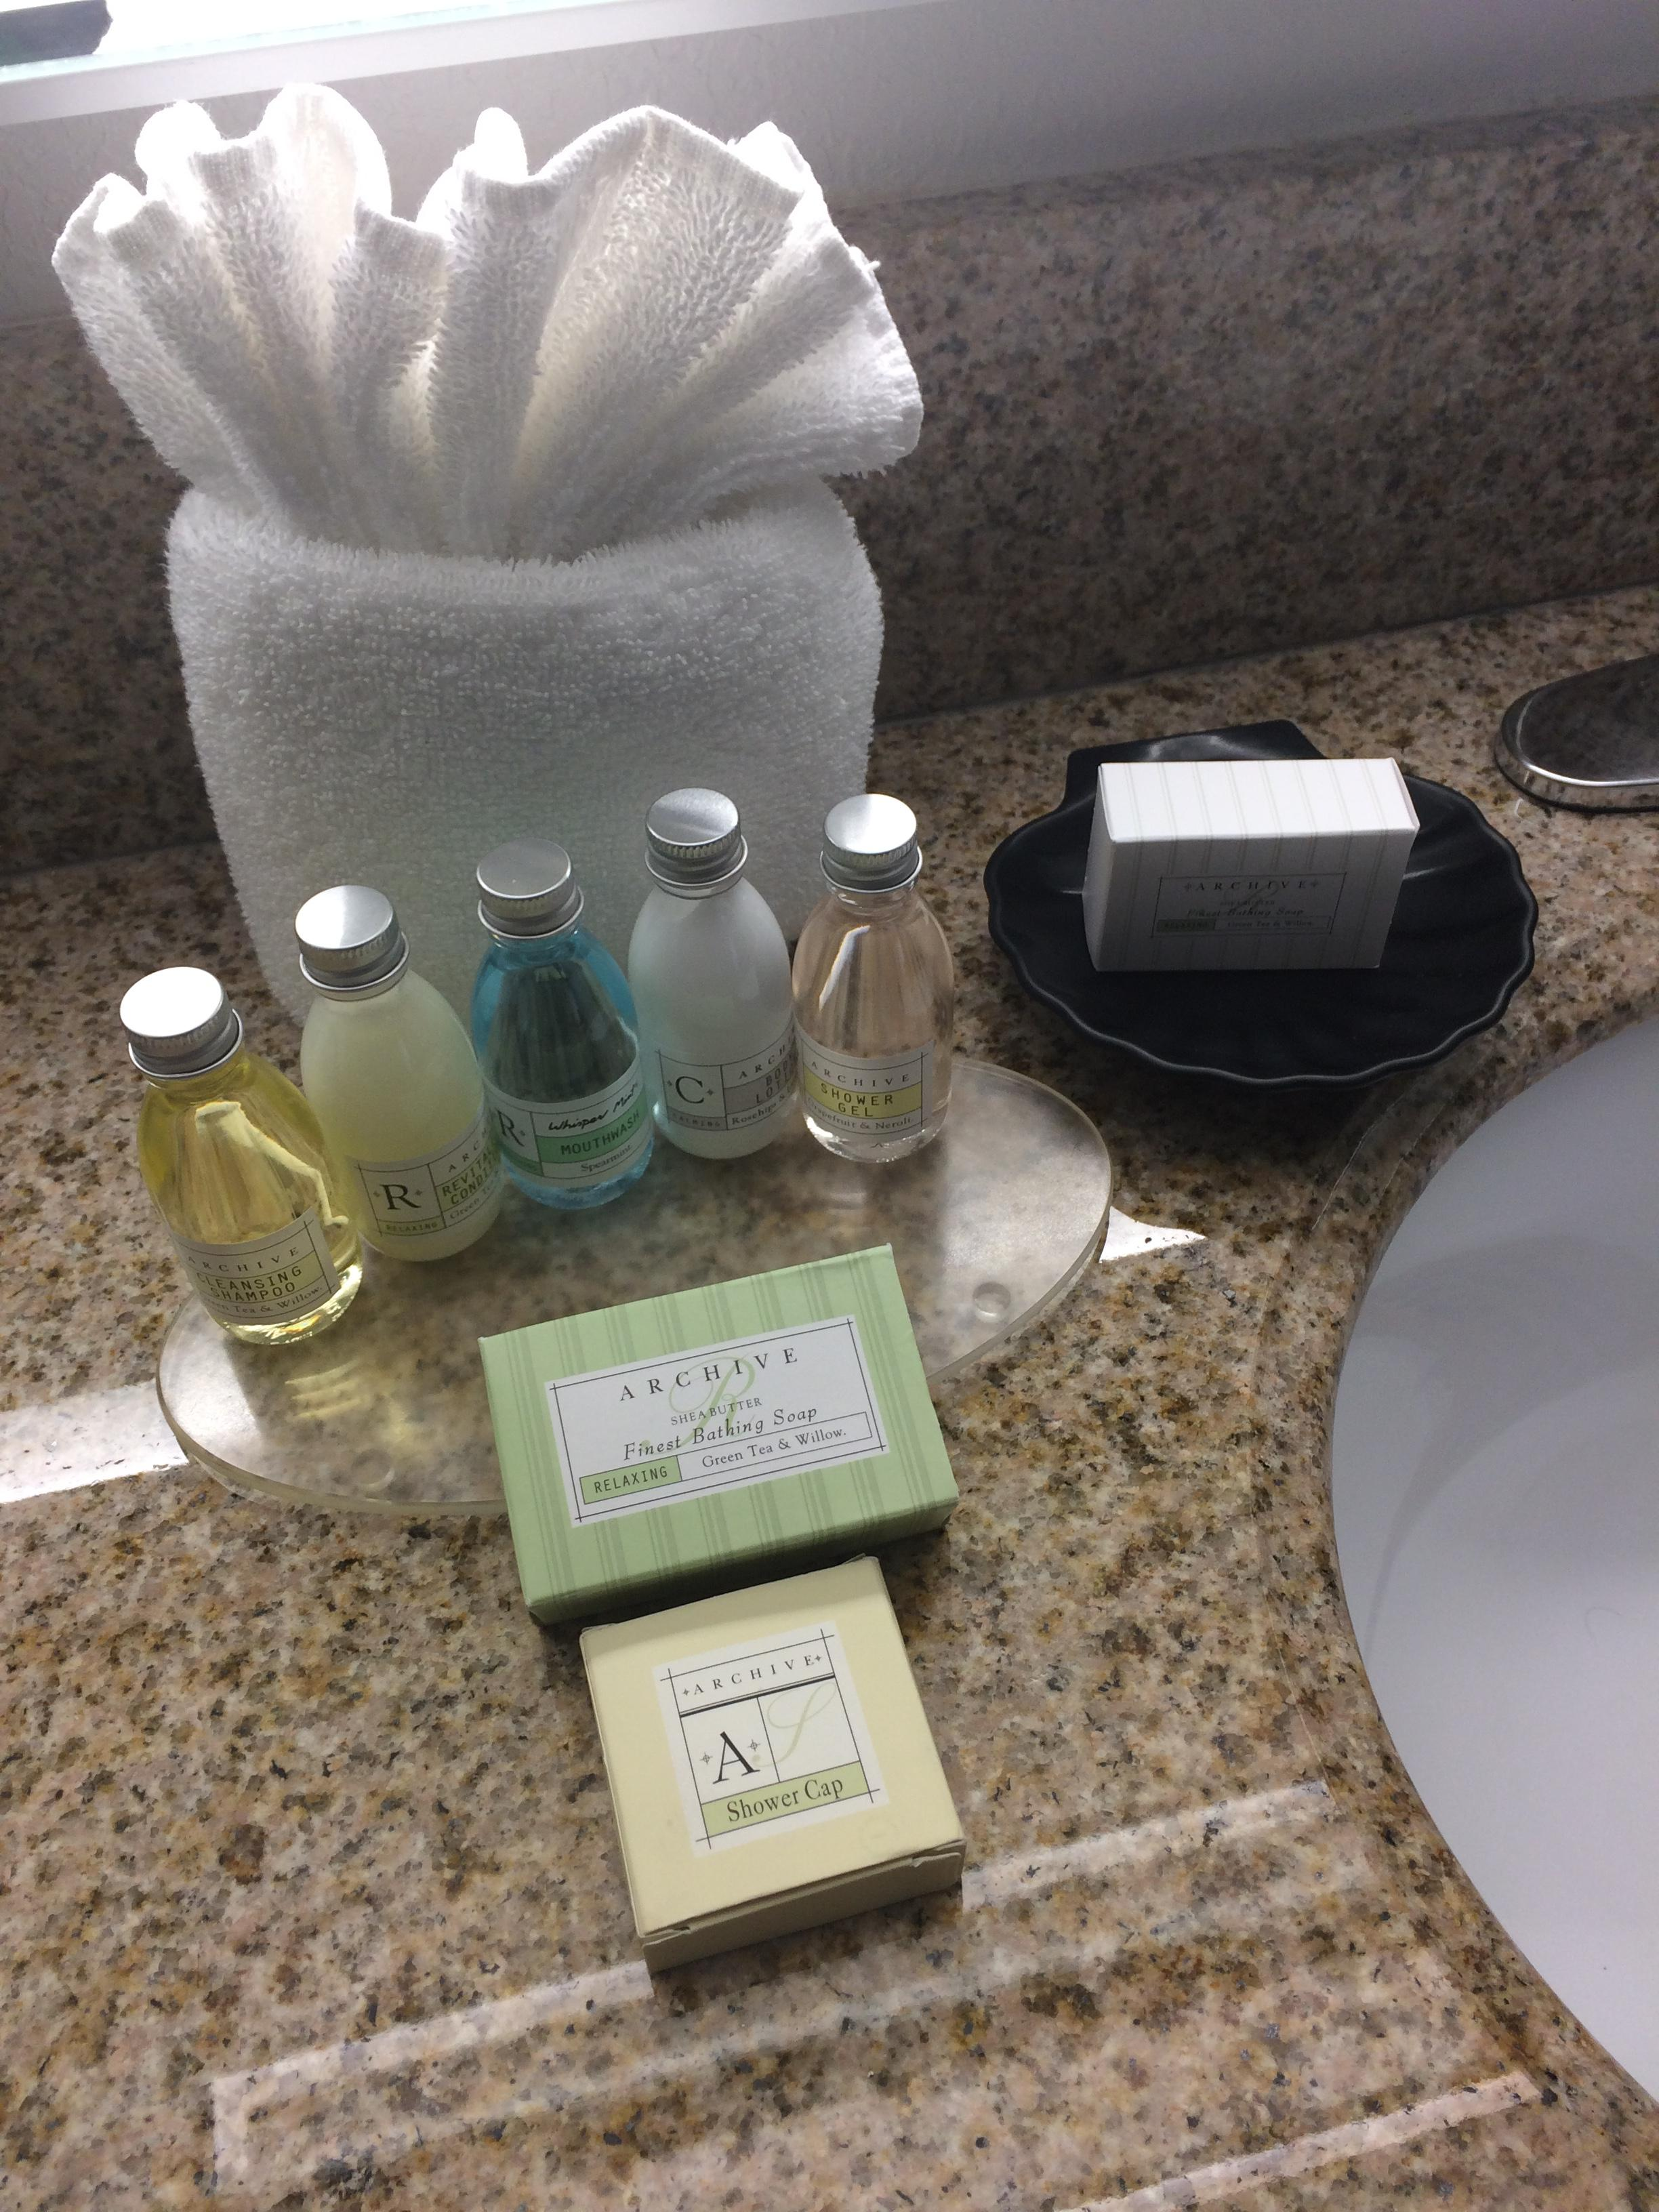 Impressive selection of complimentary soaps